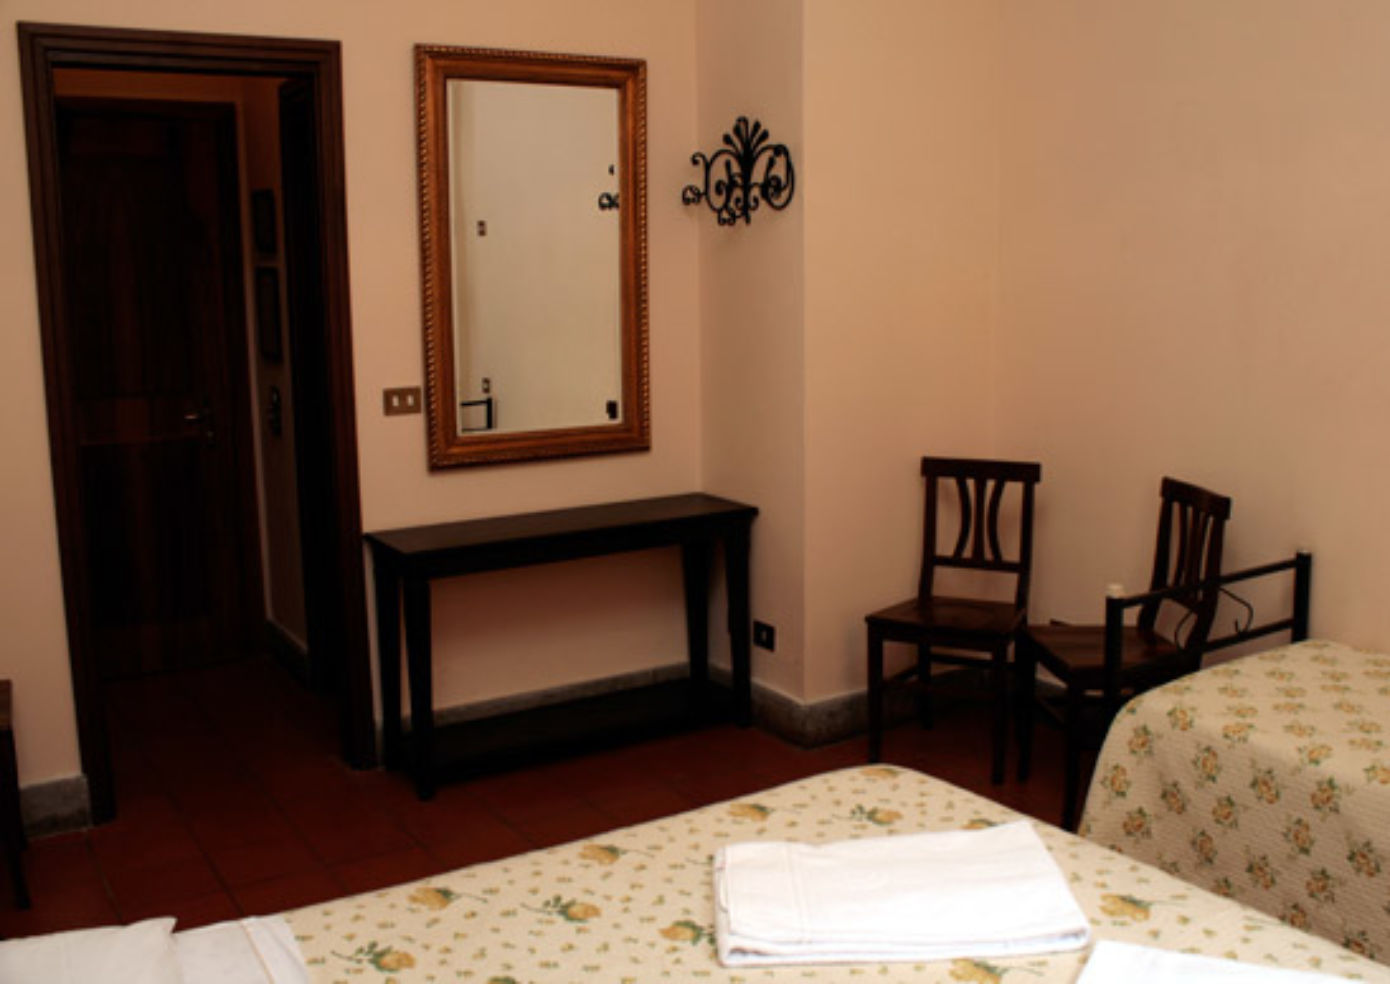 Rooms at Hotel Panda have vaulted wood-beam ceilings, stone-tiled floors, and traditional pull shutters.